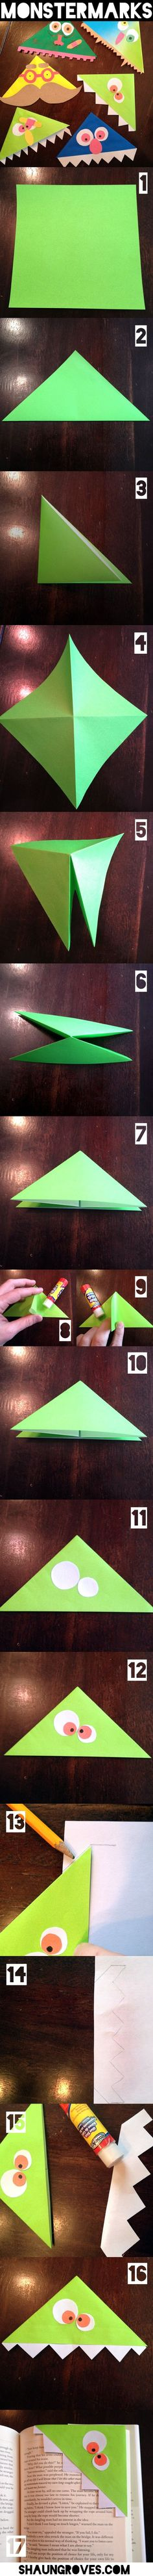 Monstermarks – Kid Craft Tutorial. Easy bookmark craft for kids (and dads). by irma